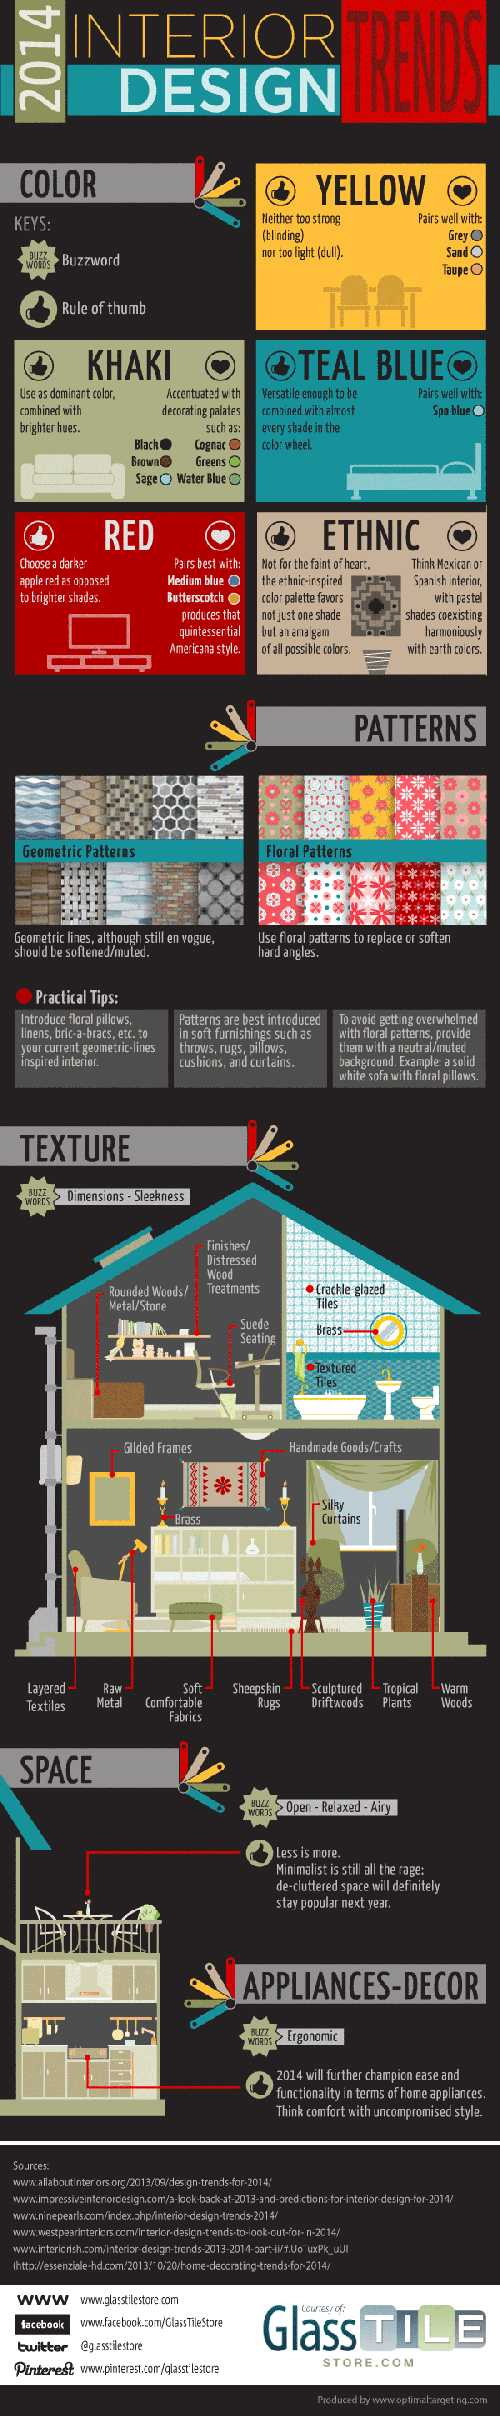 2014-Color Schemes and Design-Trends